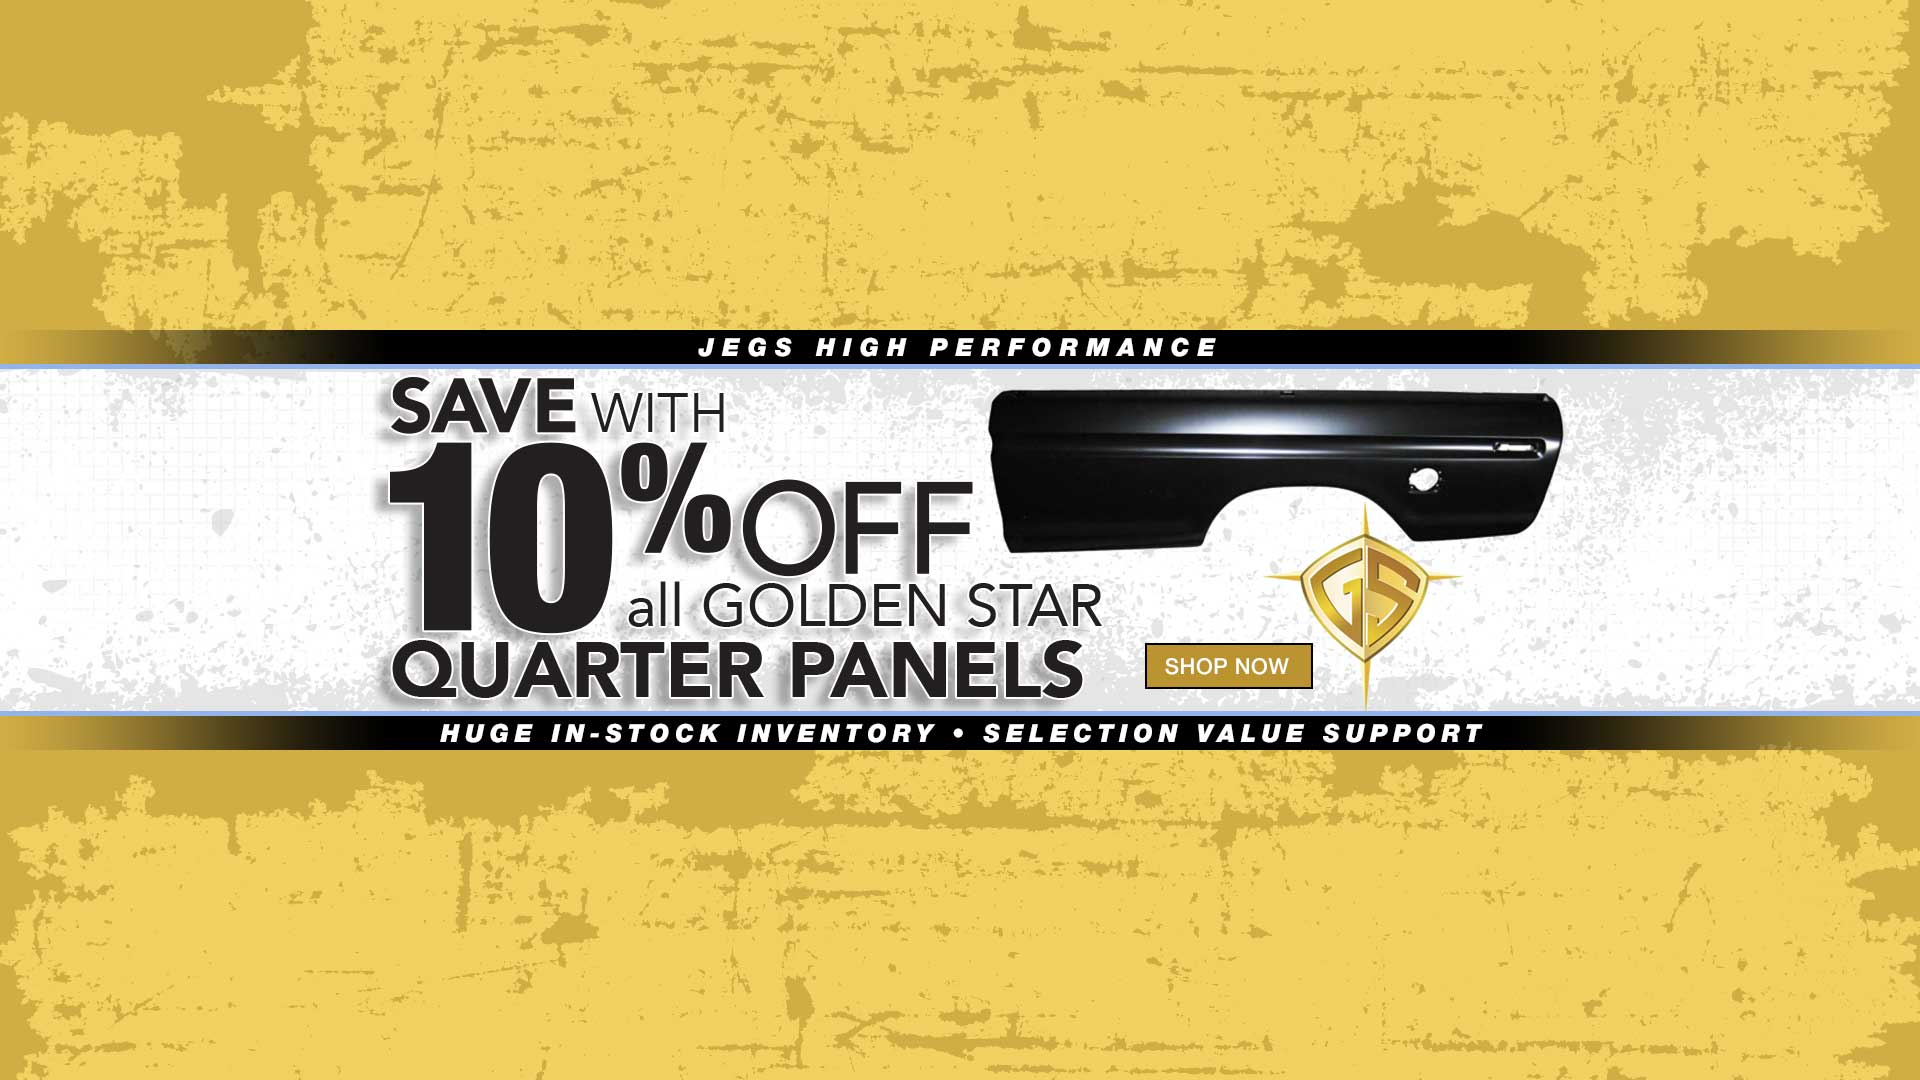 10% off Quarter Panels Golden Star